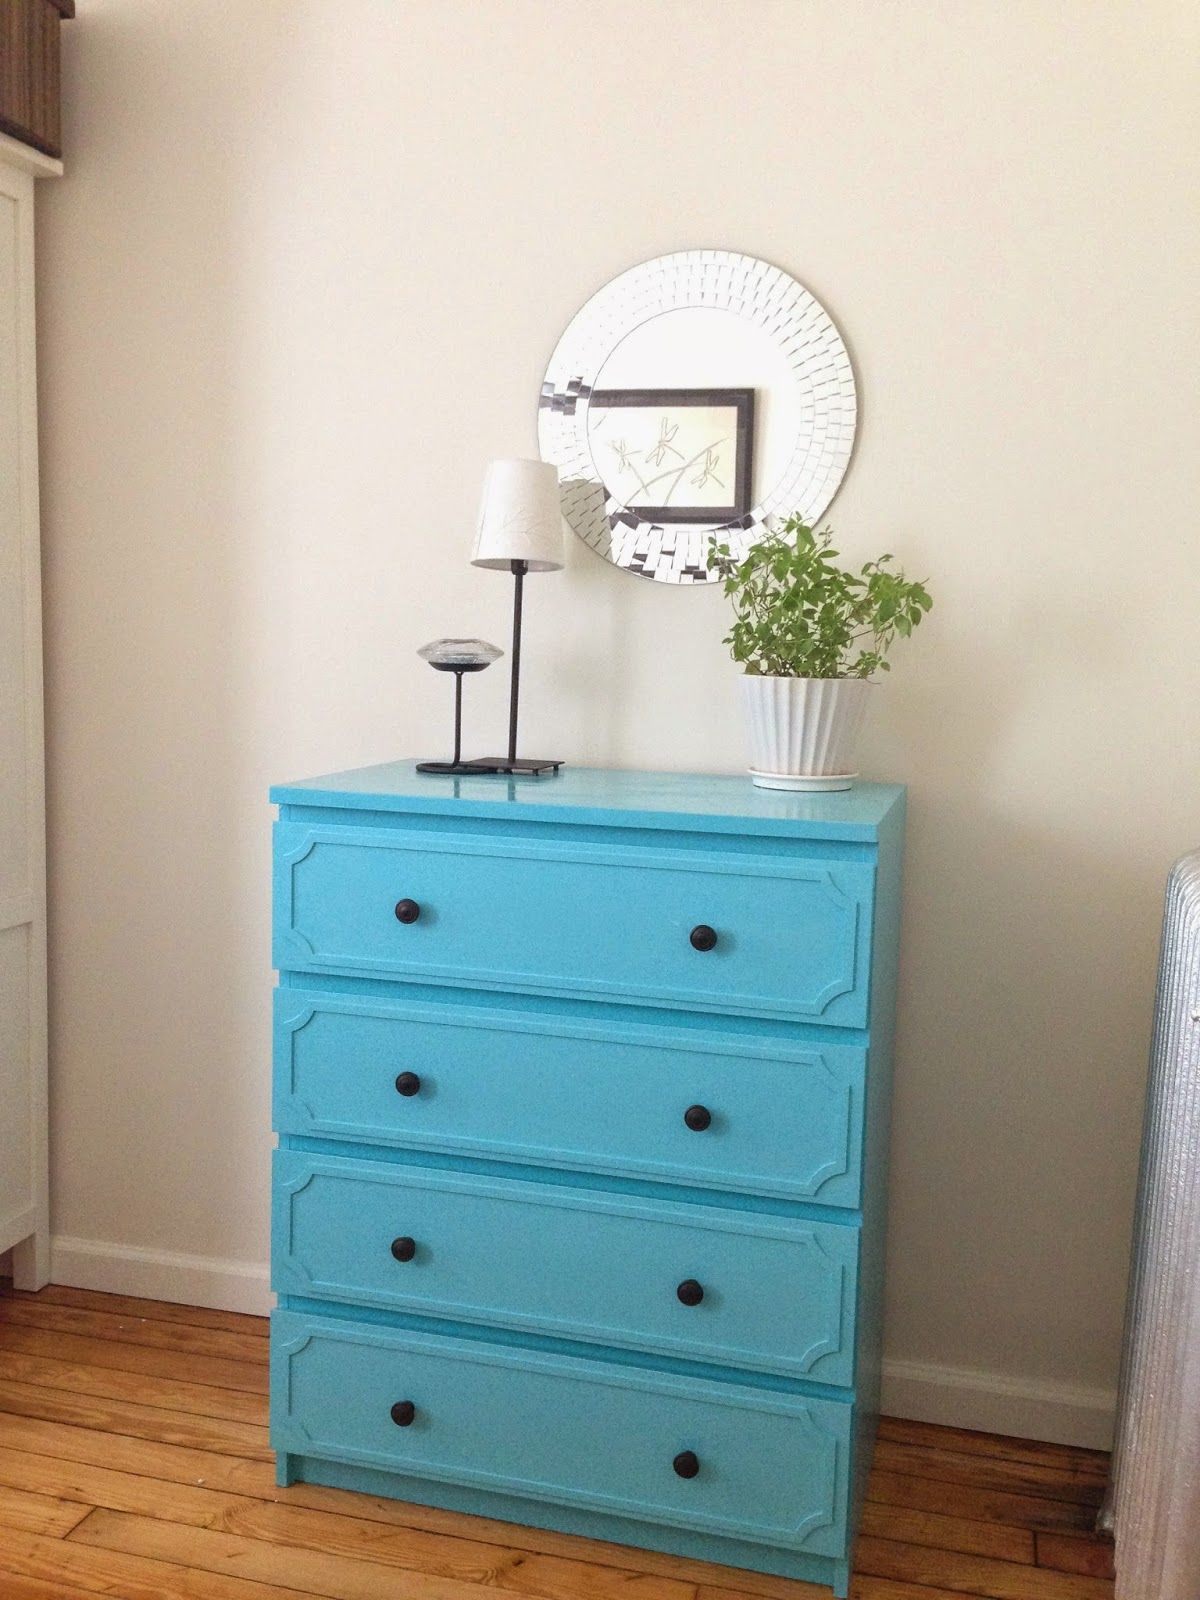 Ikea Malm Kommode Youtube Ikea Malm Dresser Diy Ideas Hacks For Ikea Malm Dresser